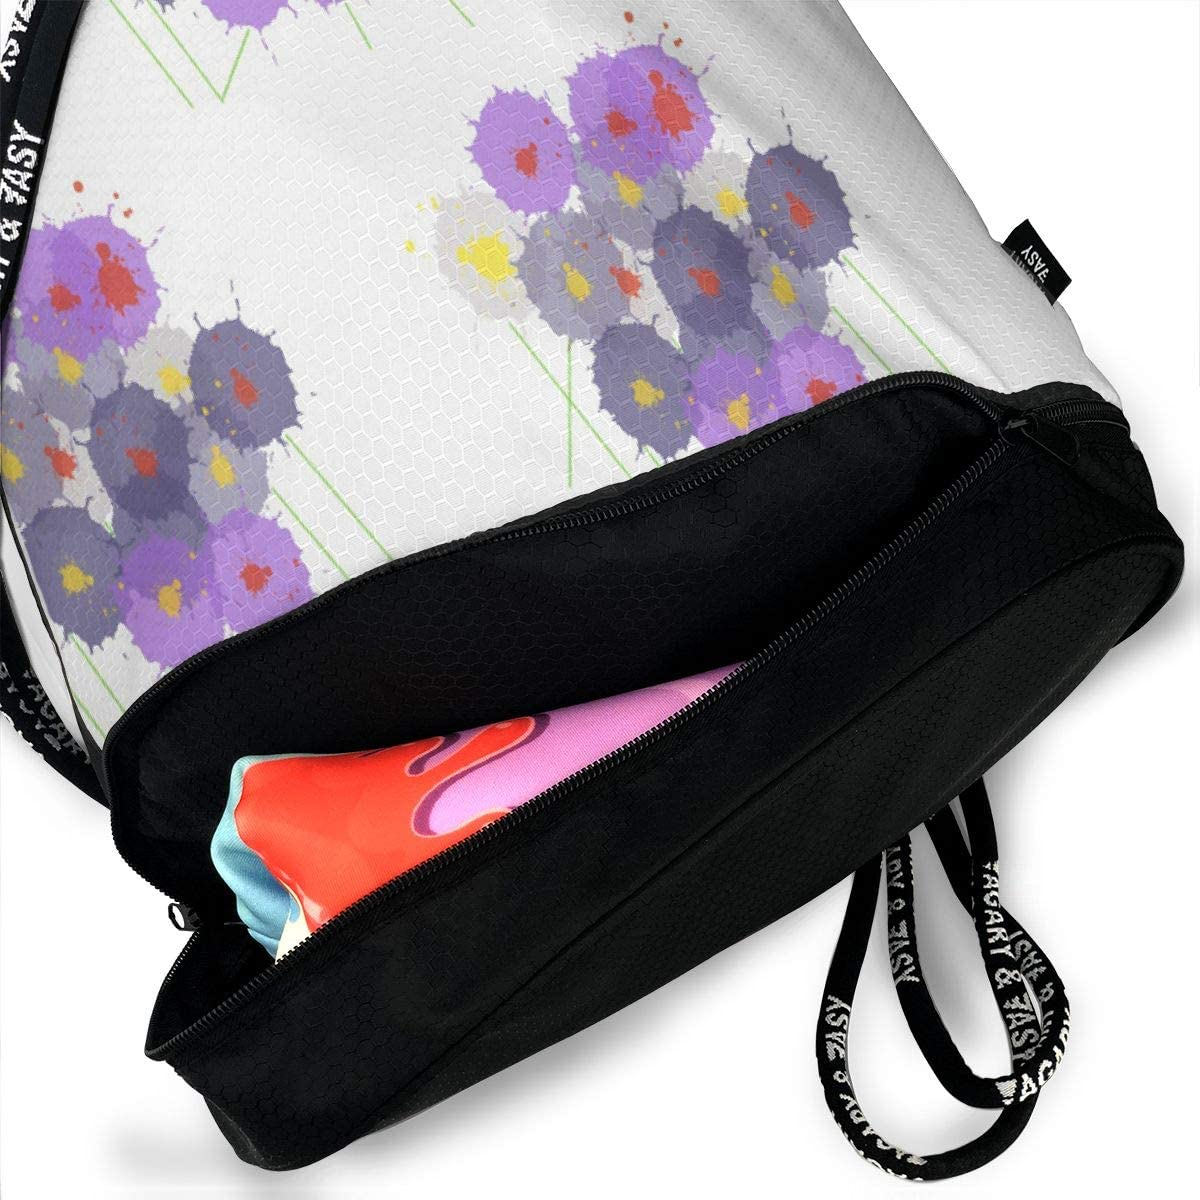 Bouquet Flowers Drawstring Backpack Sports Athletic Gym Cinch Sack String Storage Bags for Hiking Travel Beach